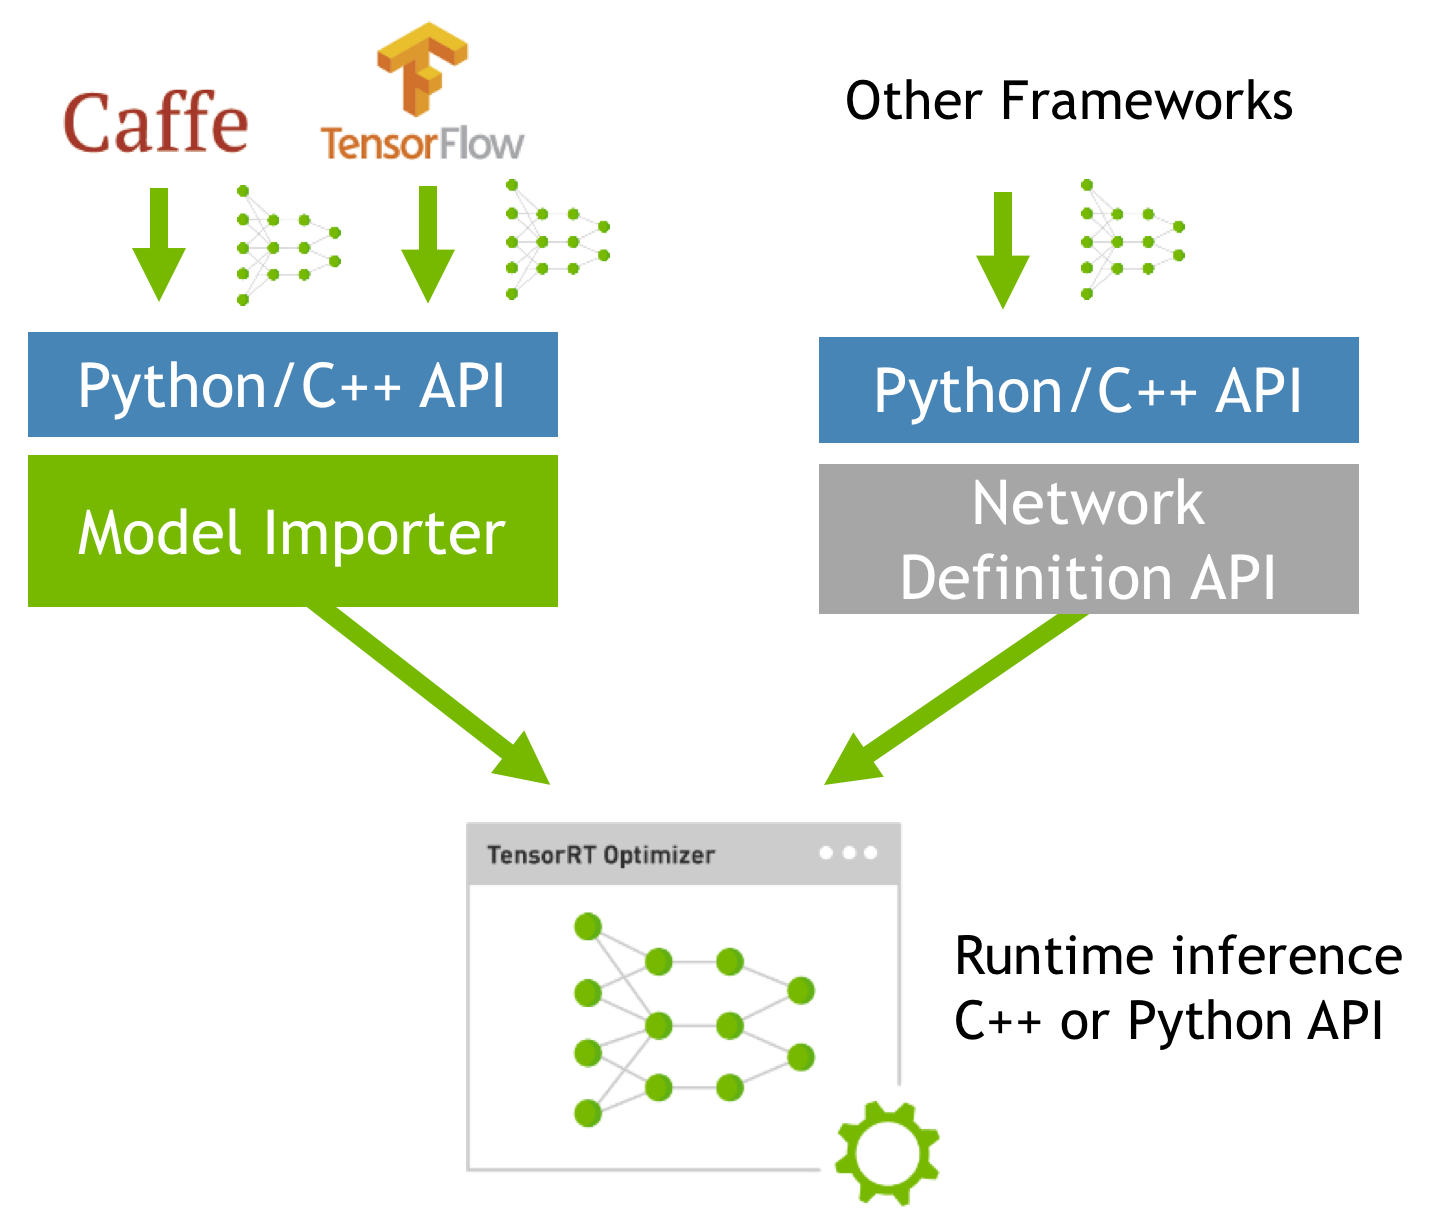 Figure 2. TensorRT provides model importers for Caffe and TensorFlow. Other framework models can be imported using the Network Definition API.